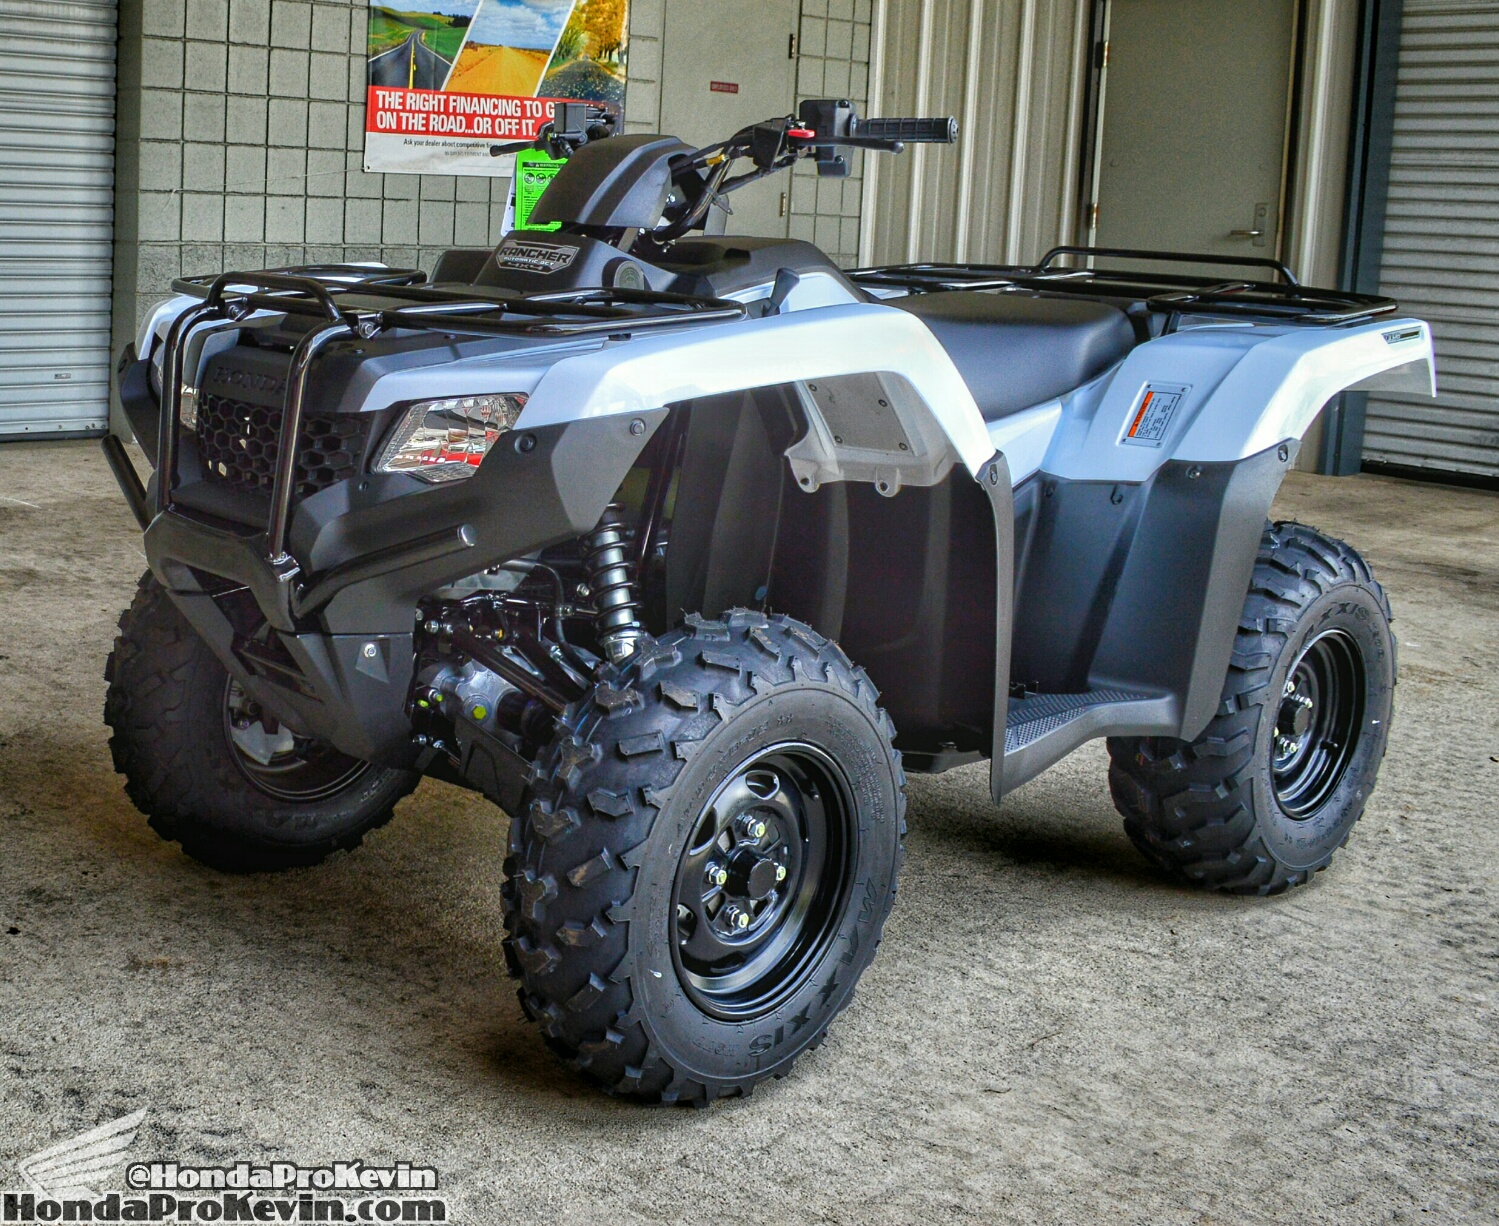 2016 Honda Rancher 420 Atv Review Specs 4x4 Four Wheeler Trx420